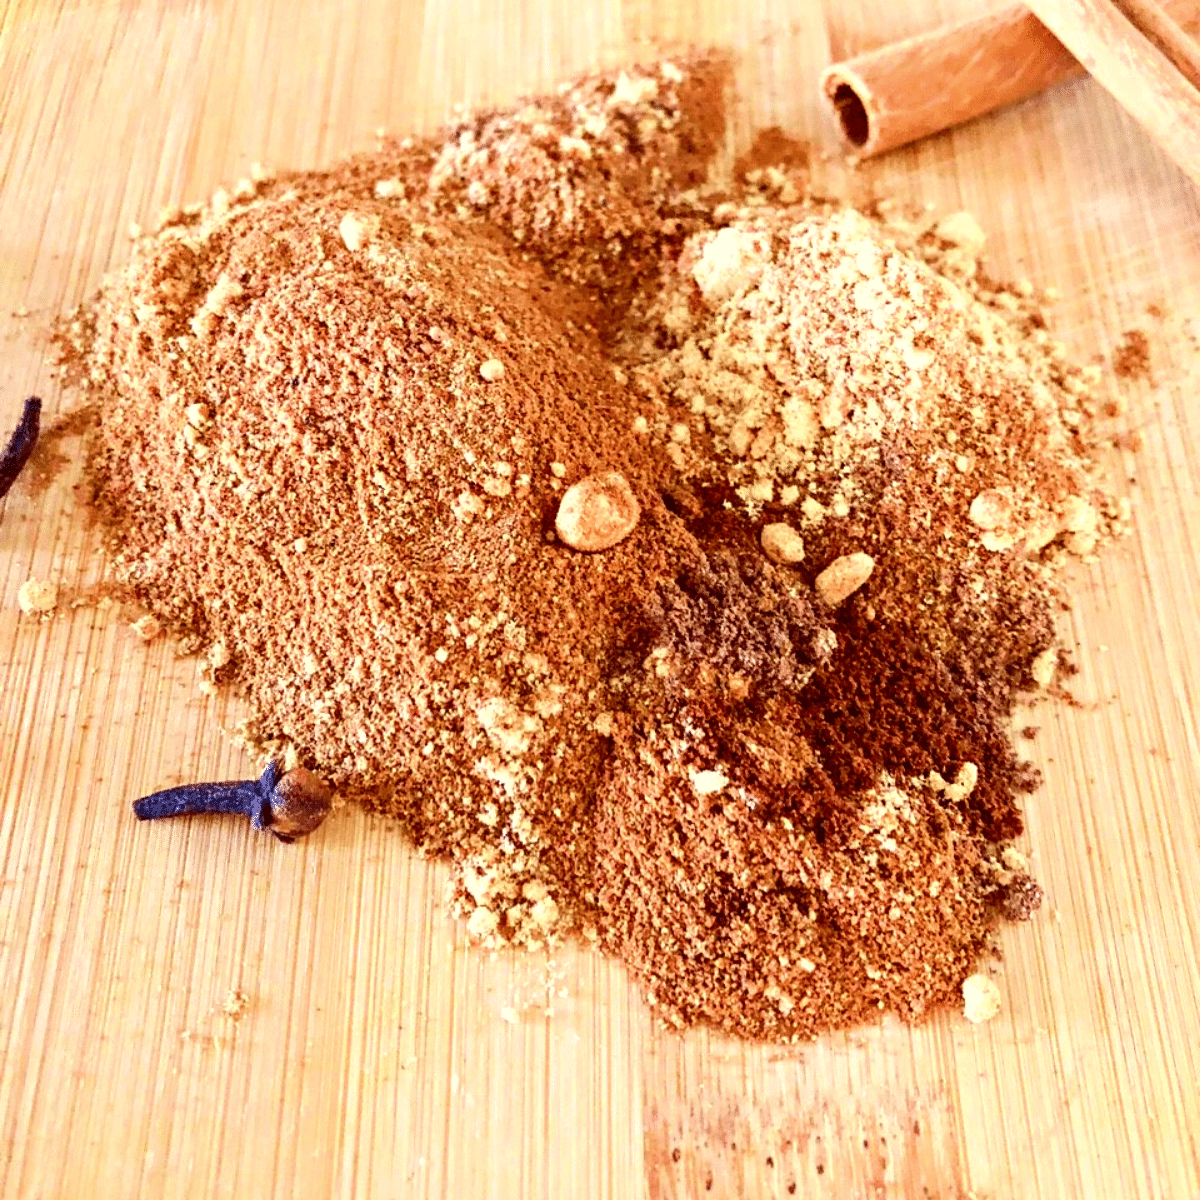 Spices for homemade pumpkin pie spice recipe on a wooden cutting board with cinnamon sticks and whole cloves